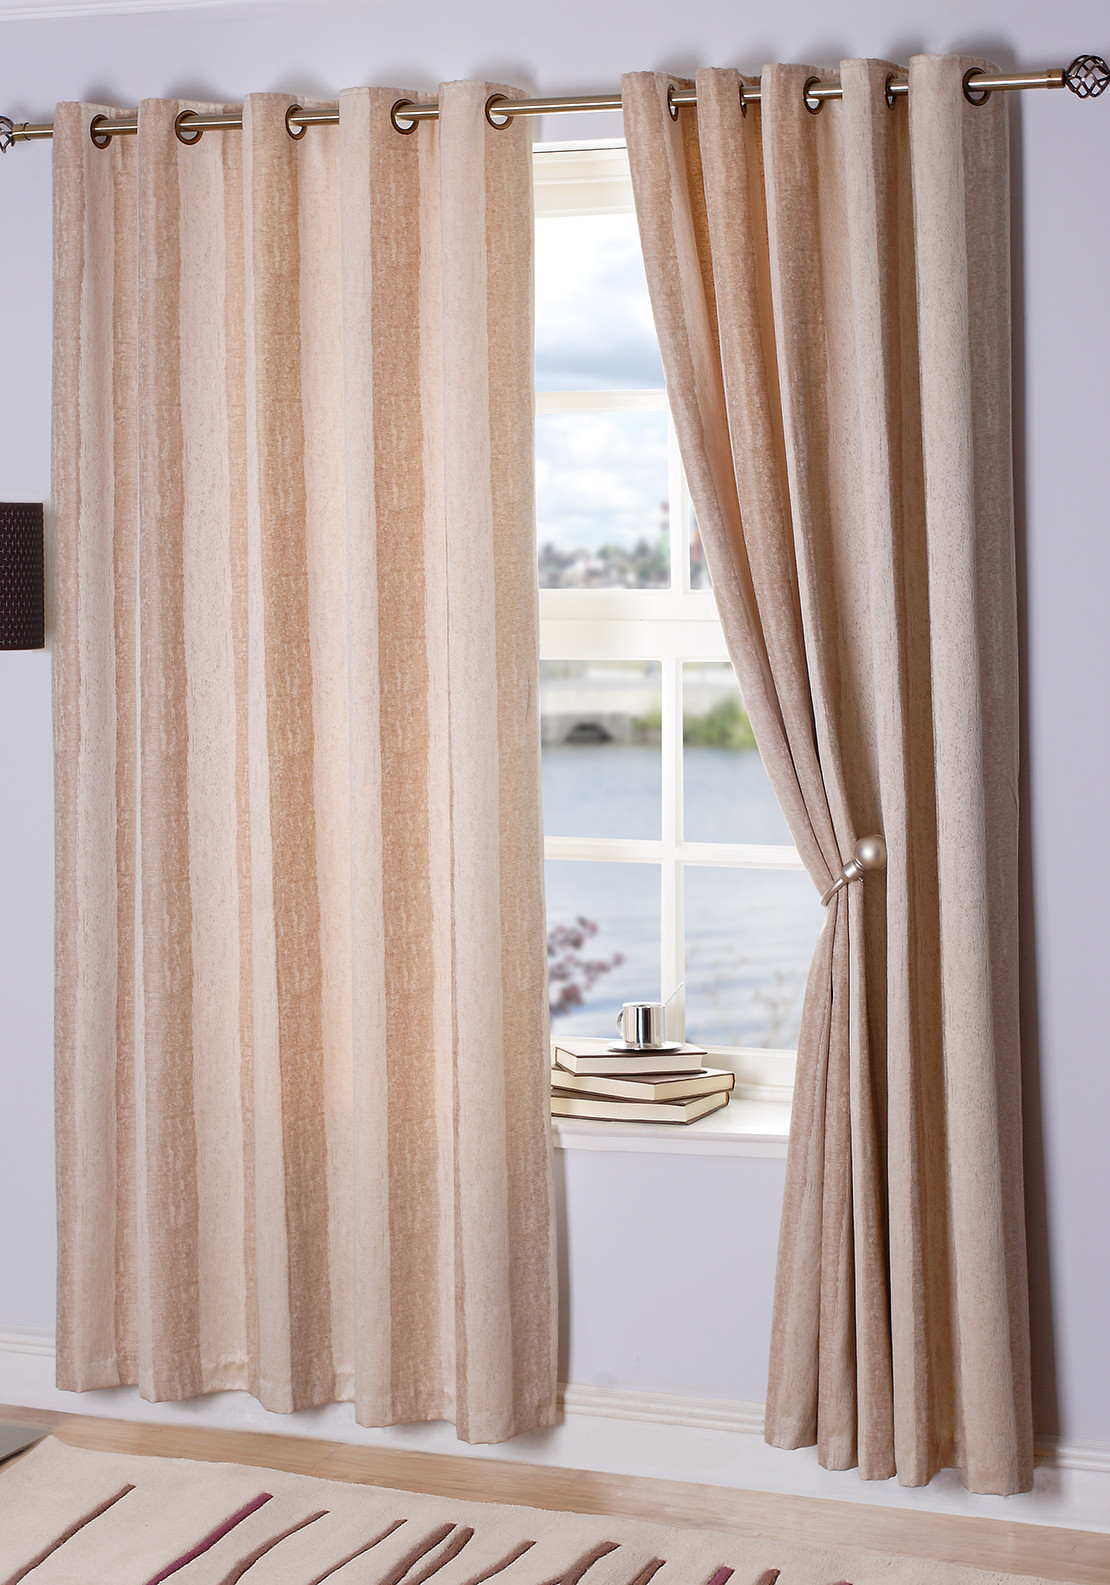 E.A. Delaney Toulon Eyelet Curtains, Sand